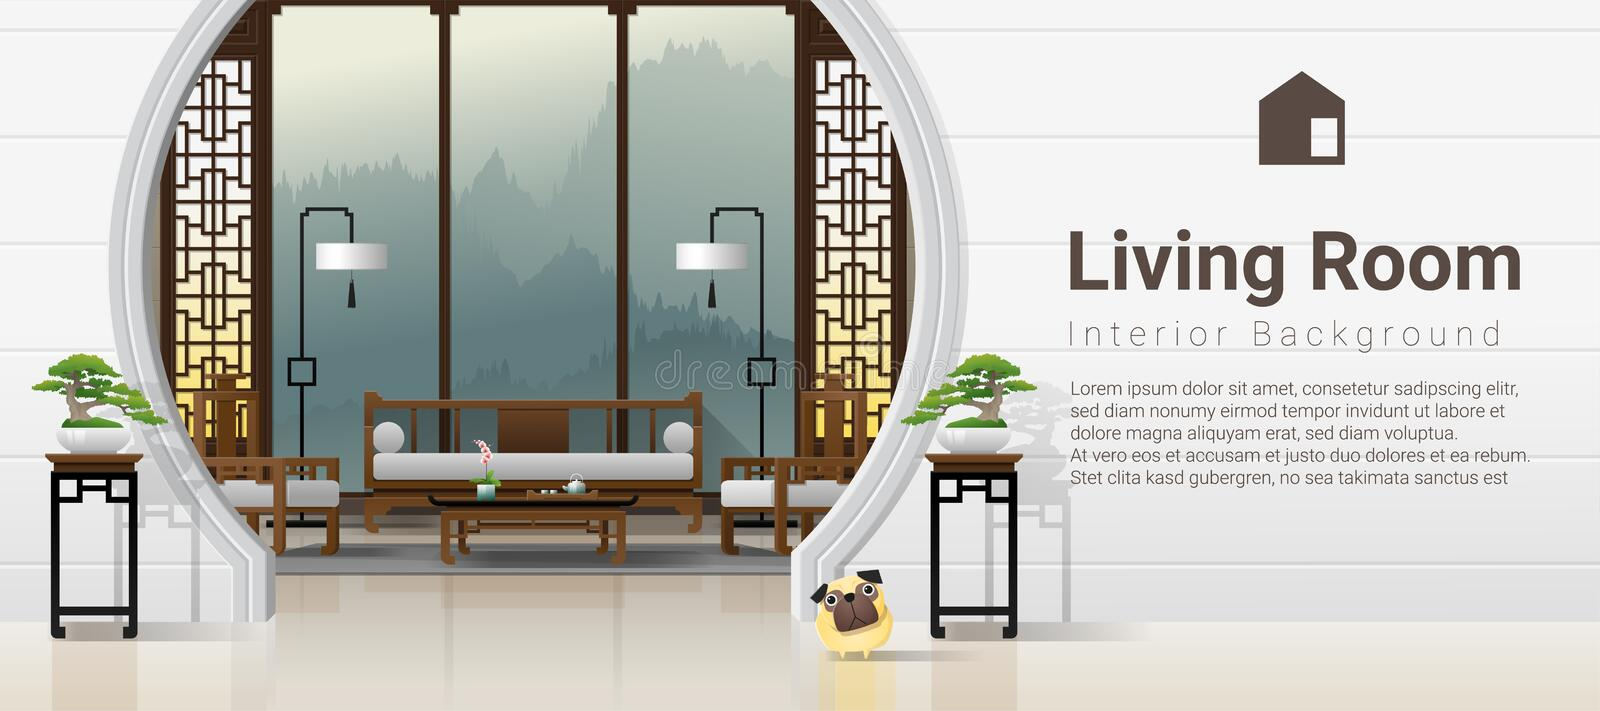 Luxury living room interior background with furniture in Chinese style royalty free illustration